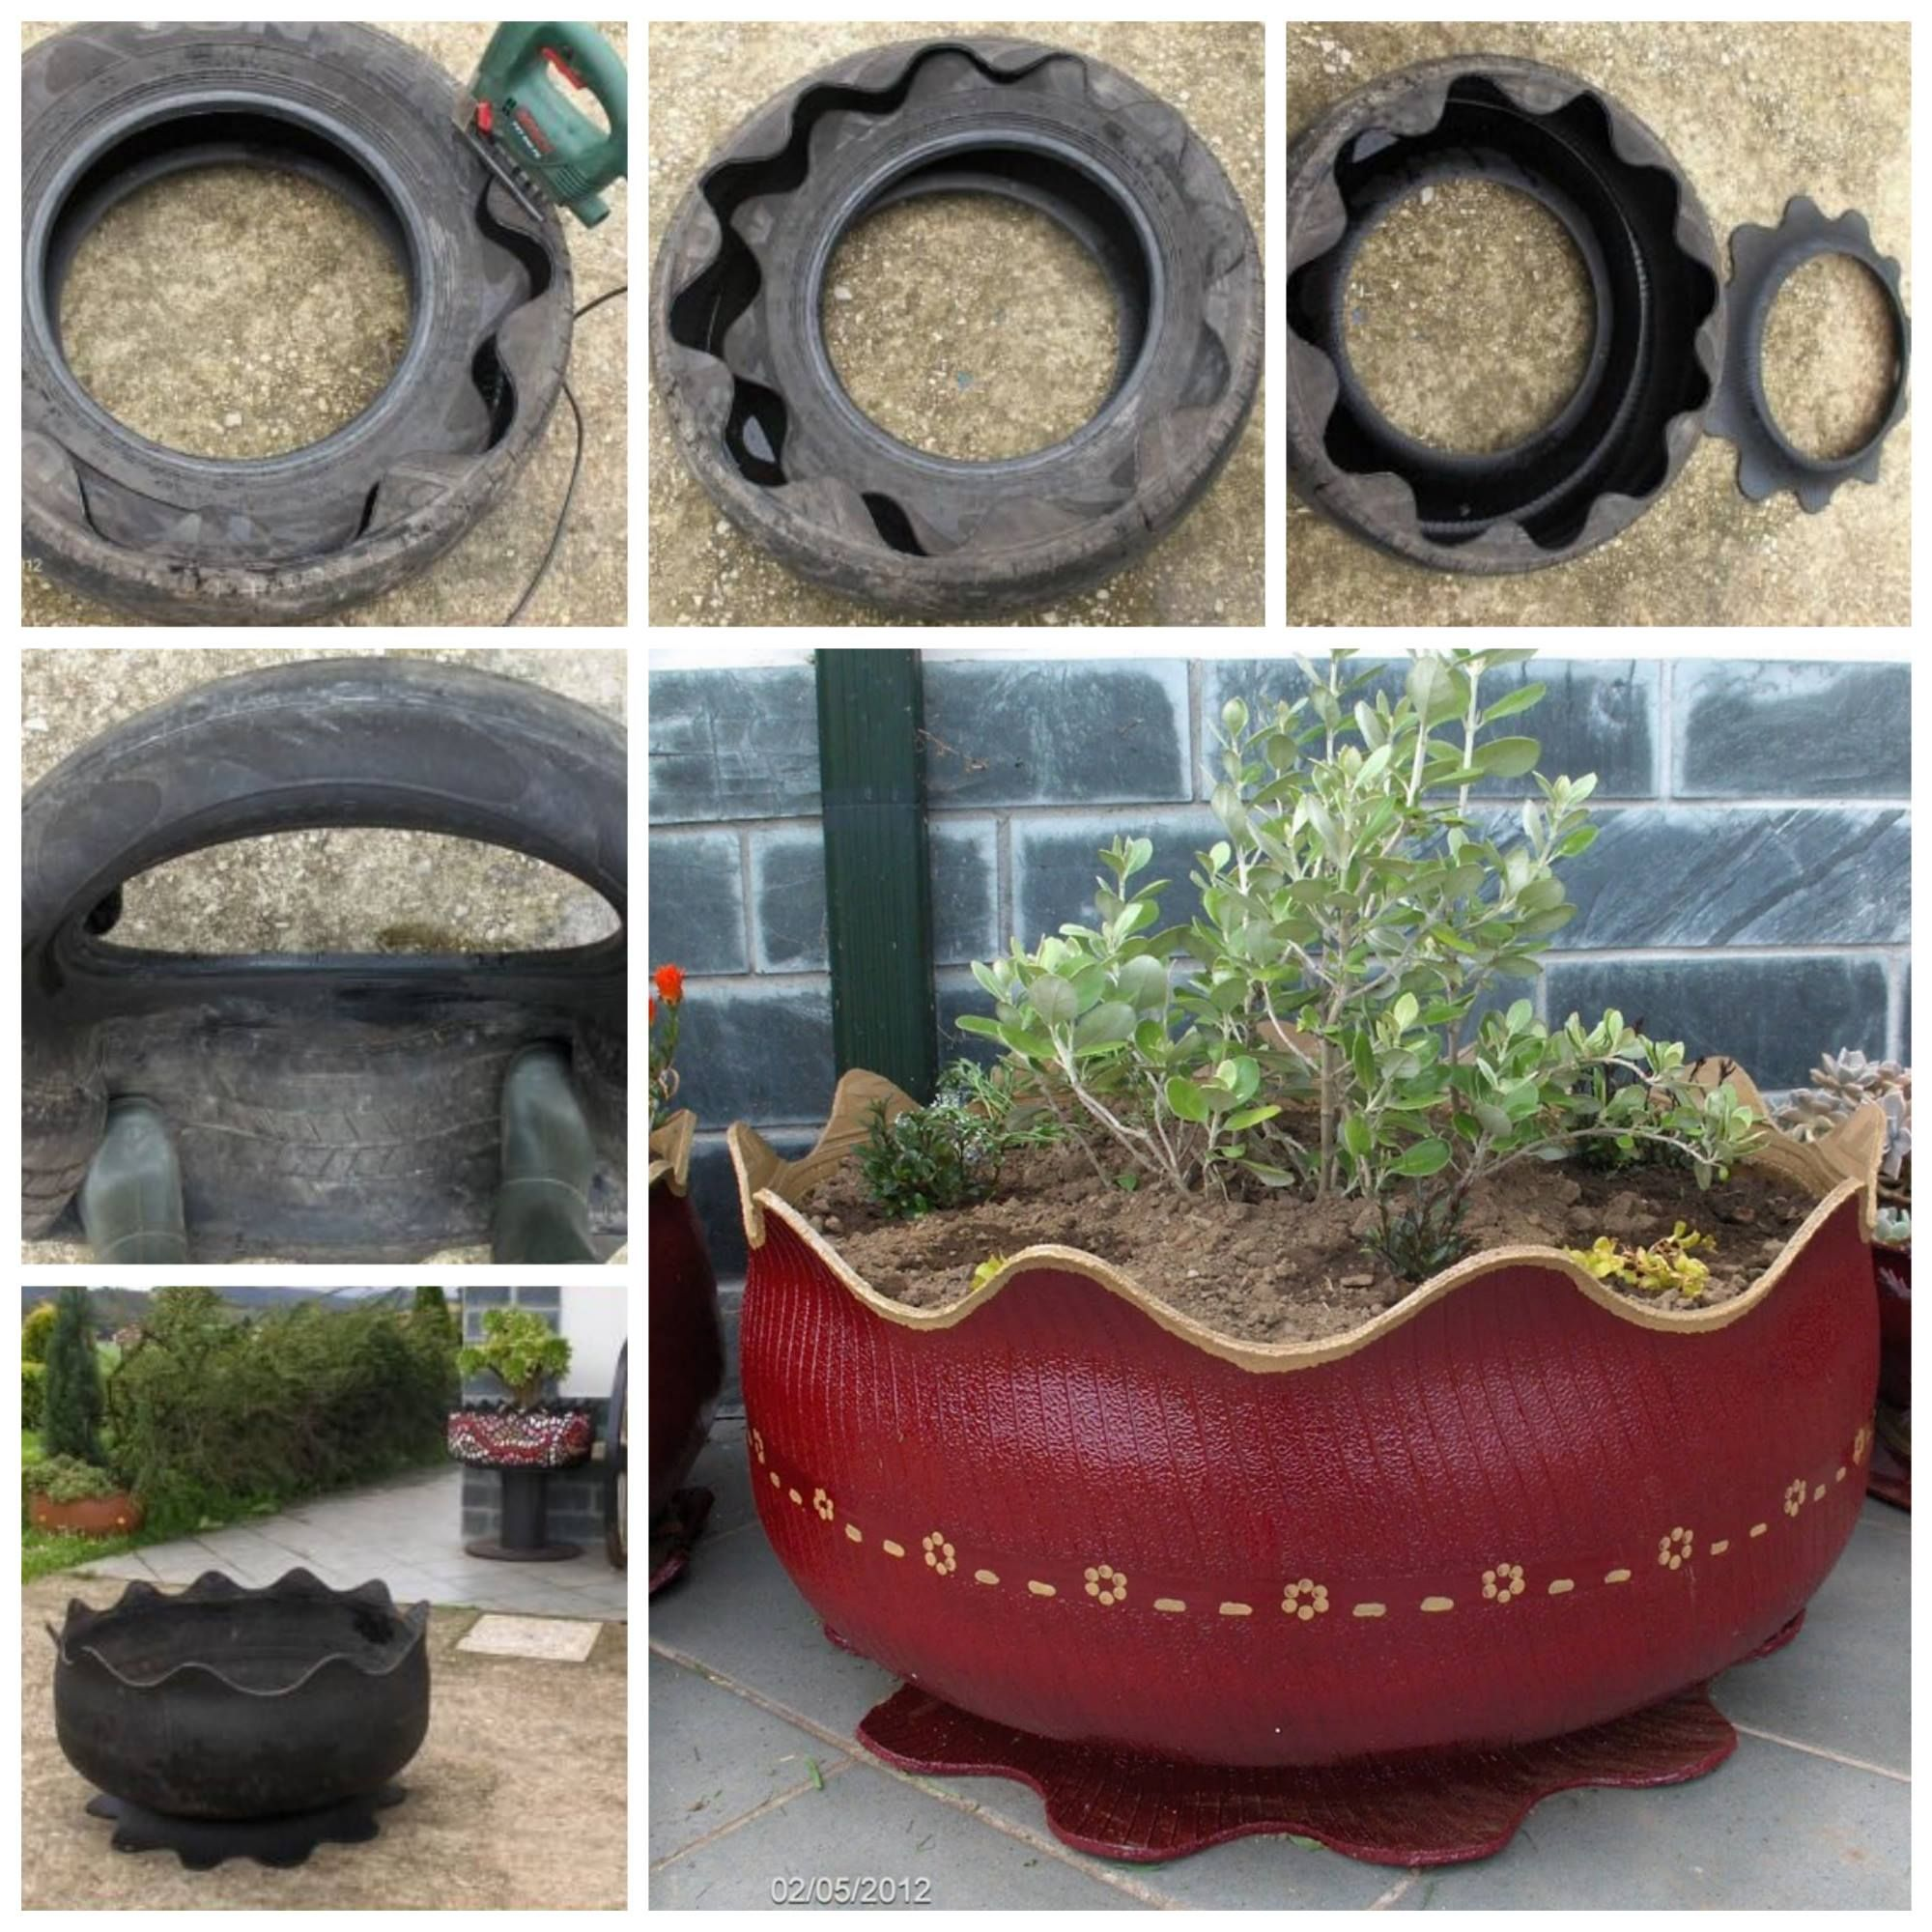 Garden Ideas With Tires pintiina arnberg on puutarha | pinterest | easy diy, planters